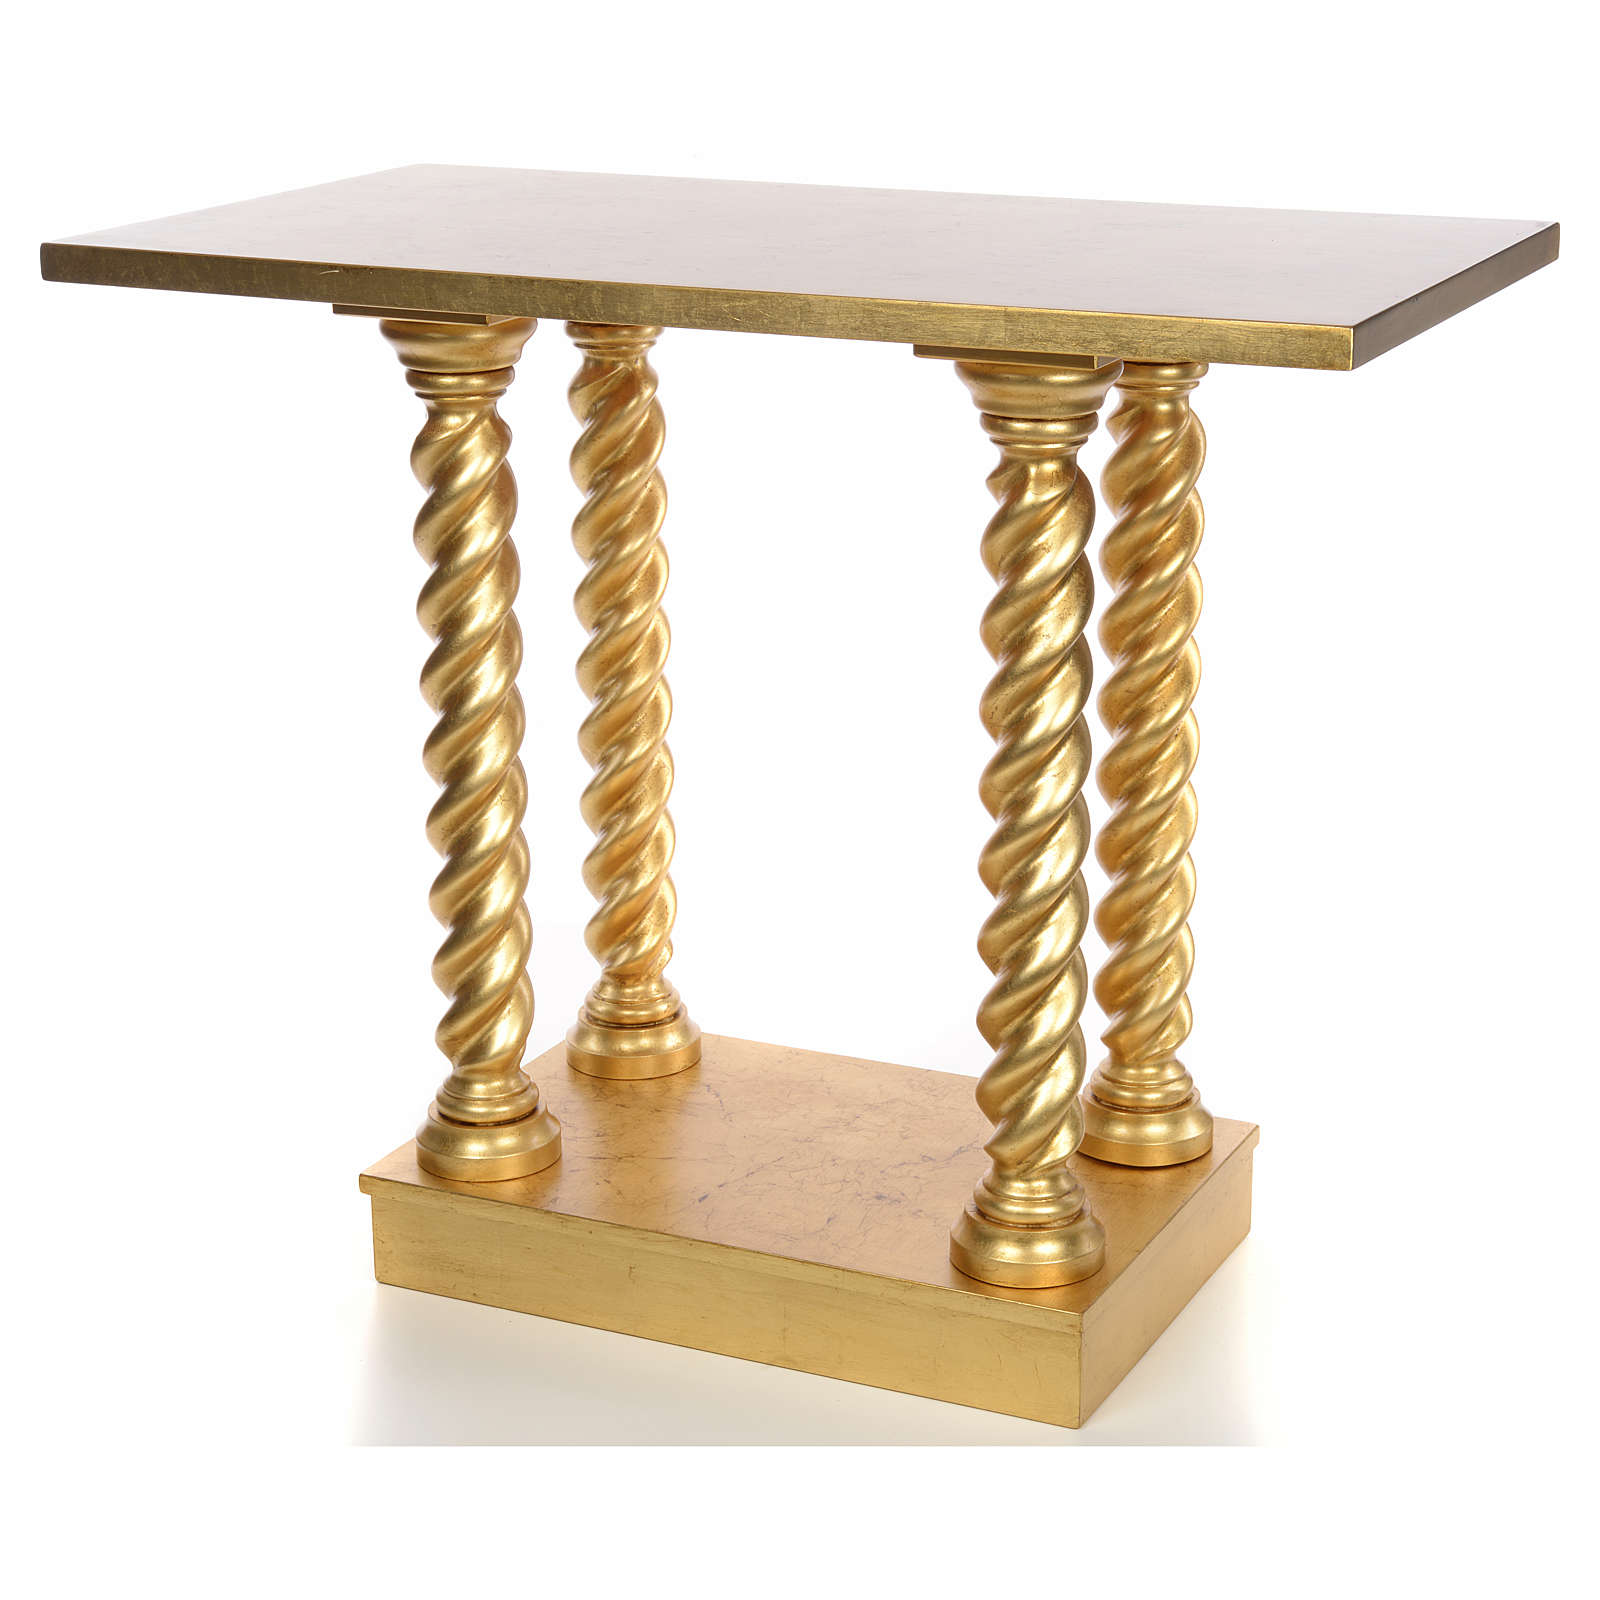 Altar in beech wood with columns 120 x 80 cm 4